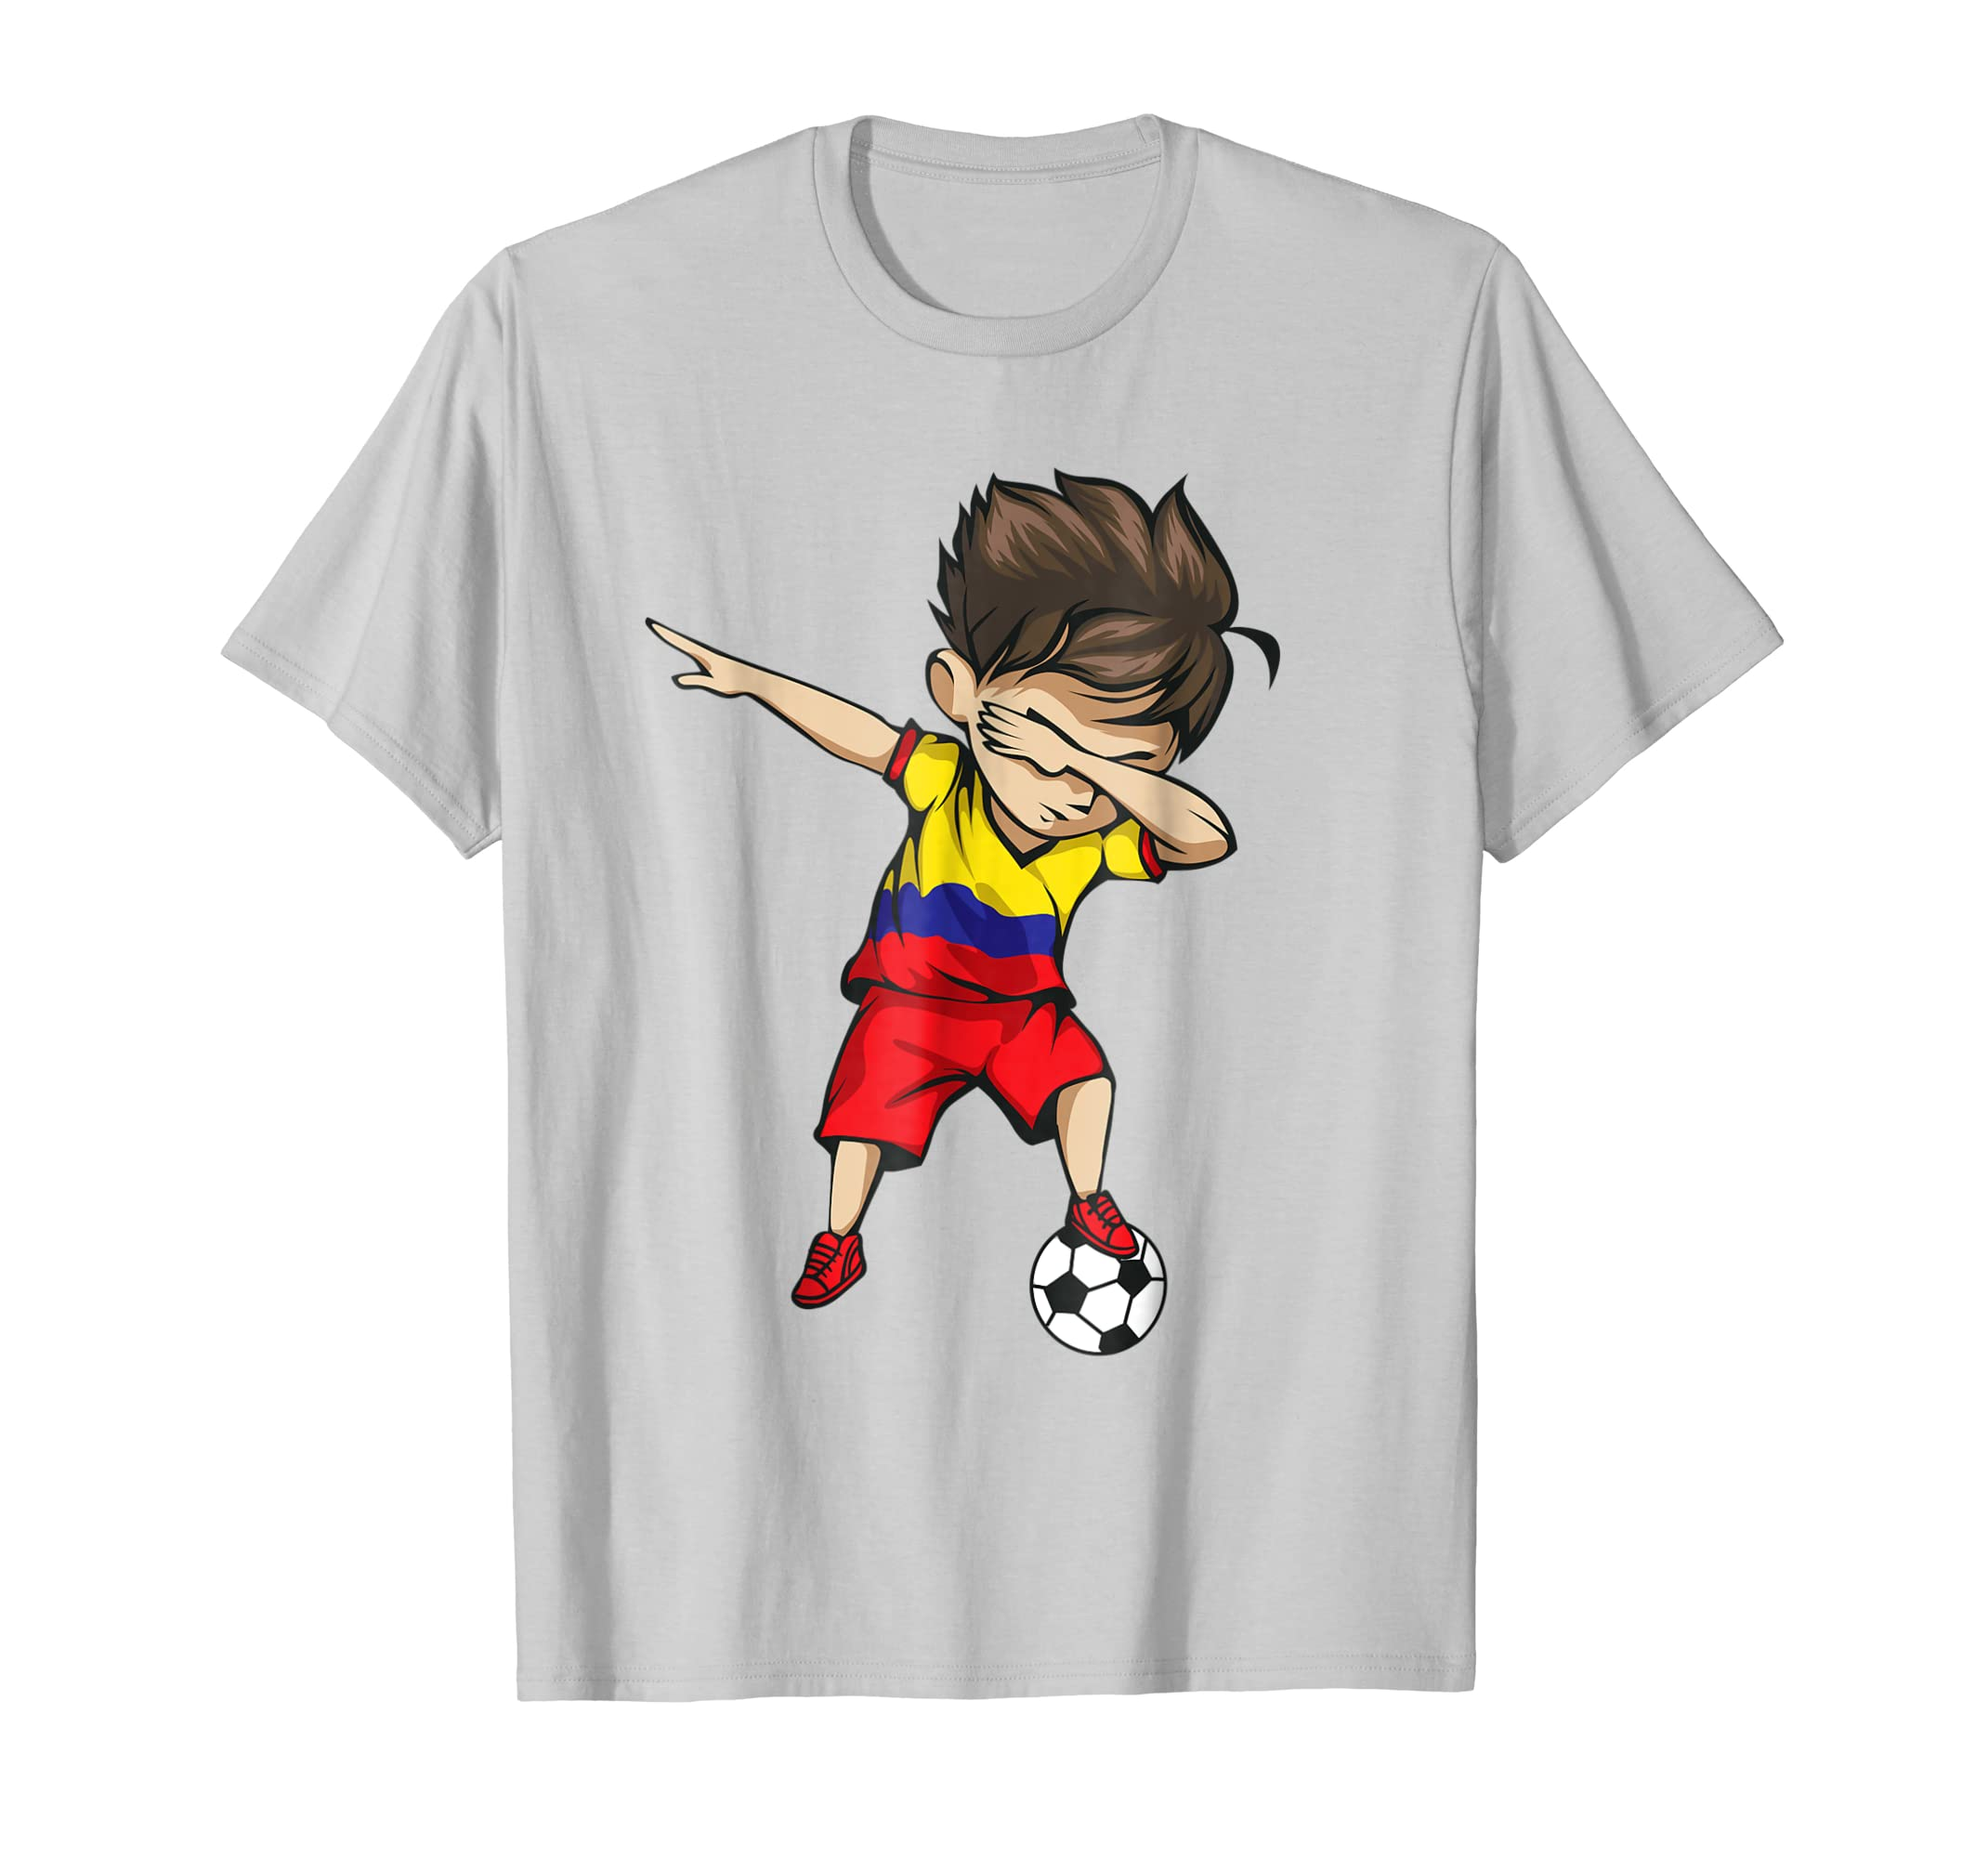 676b8e3d388 ... Dabbing Soccer Boy Colombia Jersey Shirt Colombian Football-prm ...